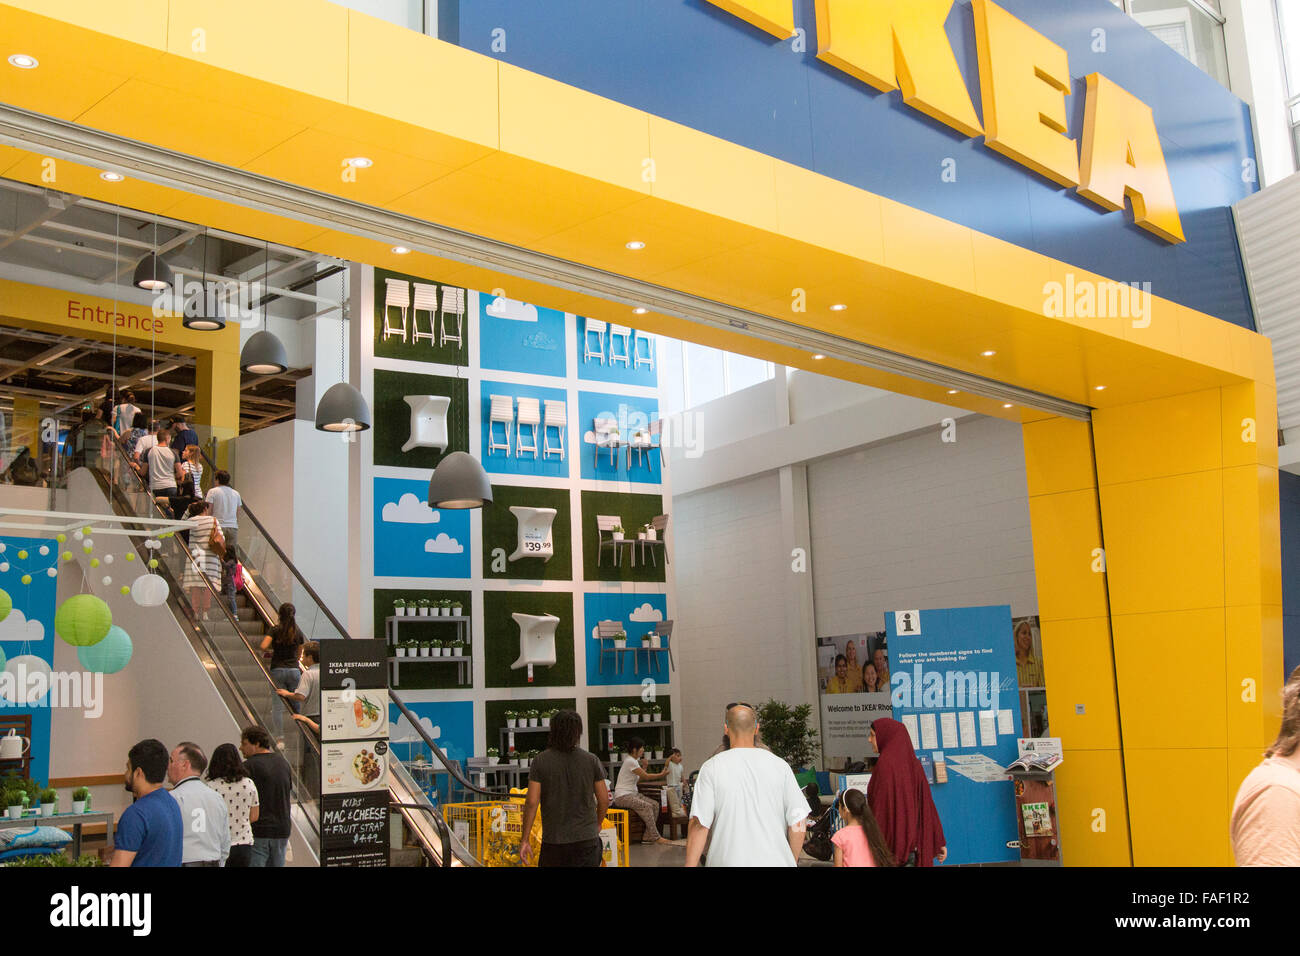 Ikea Furniture Store Entrance At Rhodes Shopping Centre In Sydney